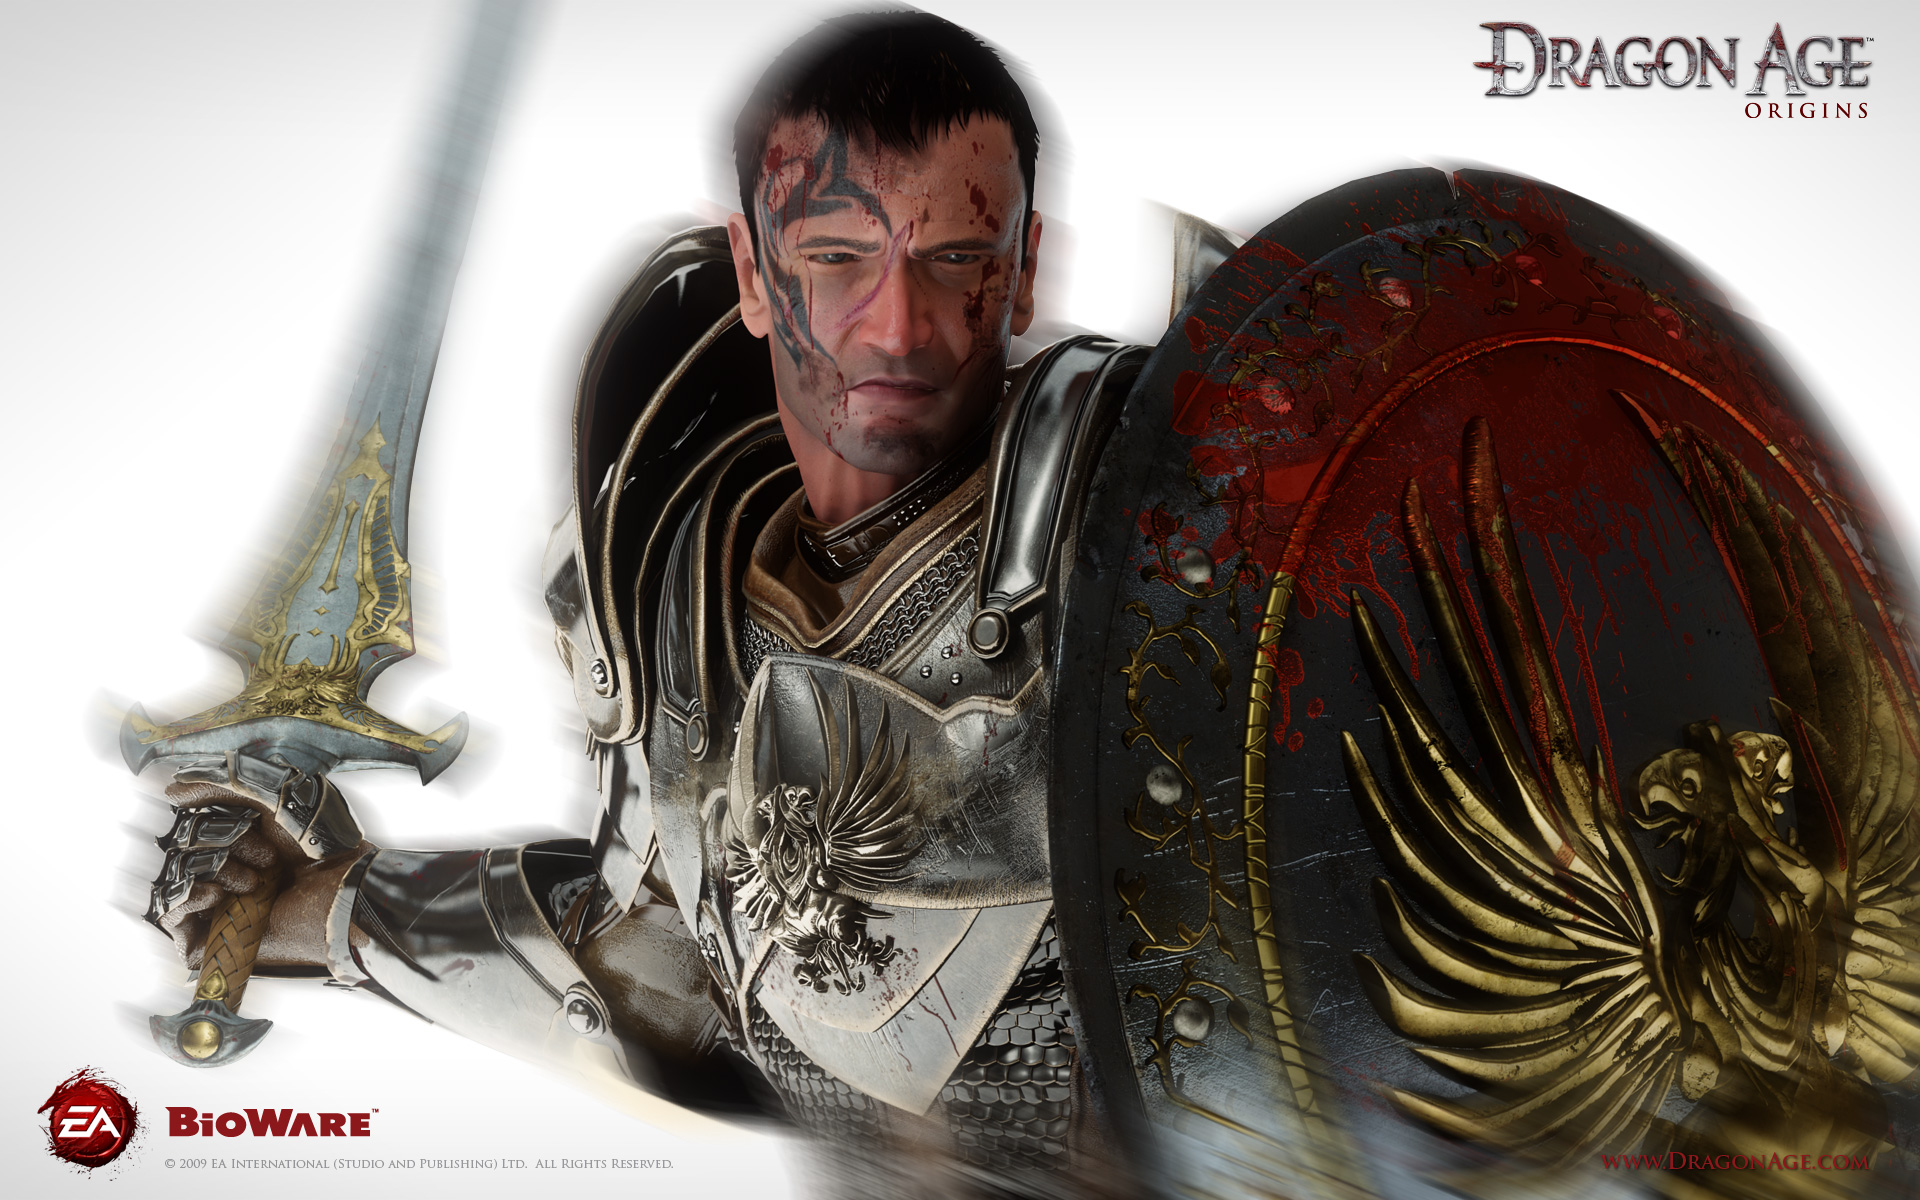 Dragon Age Origins Wallpapers: The Warden (Dragon Age)